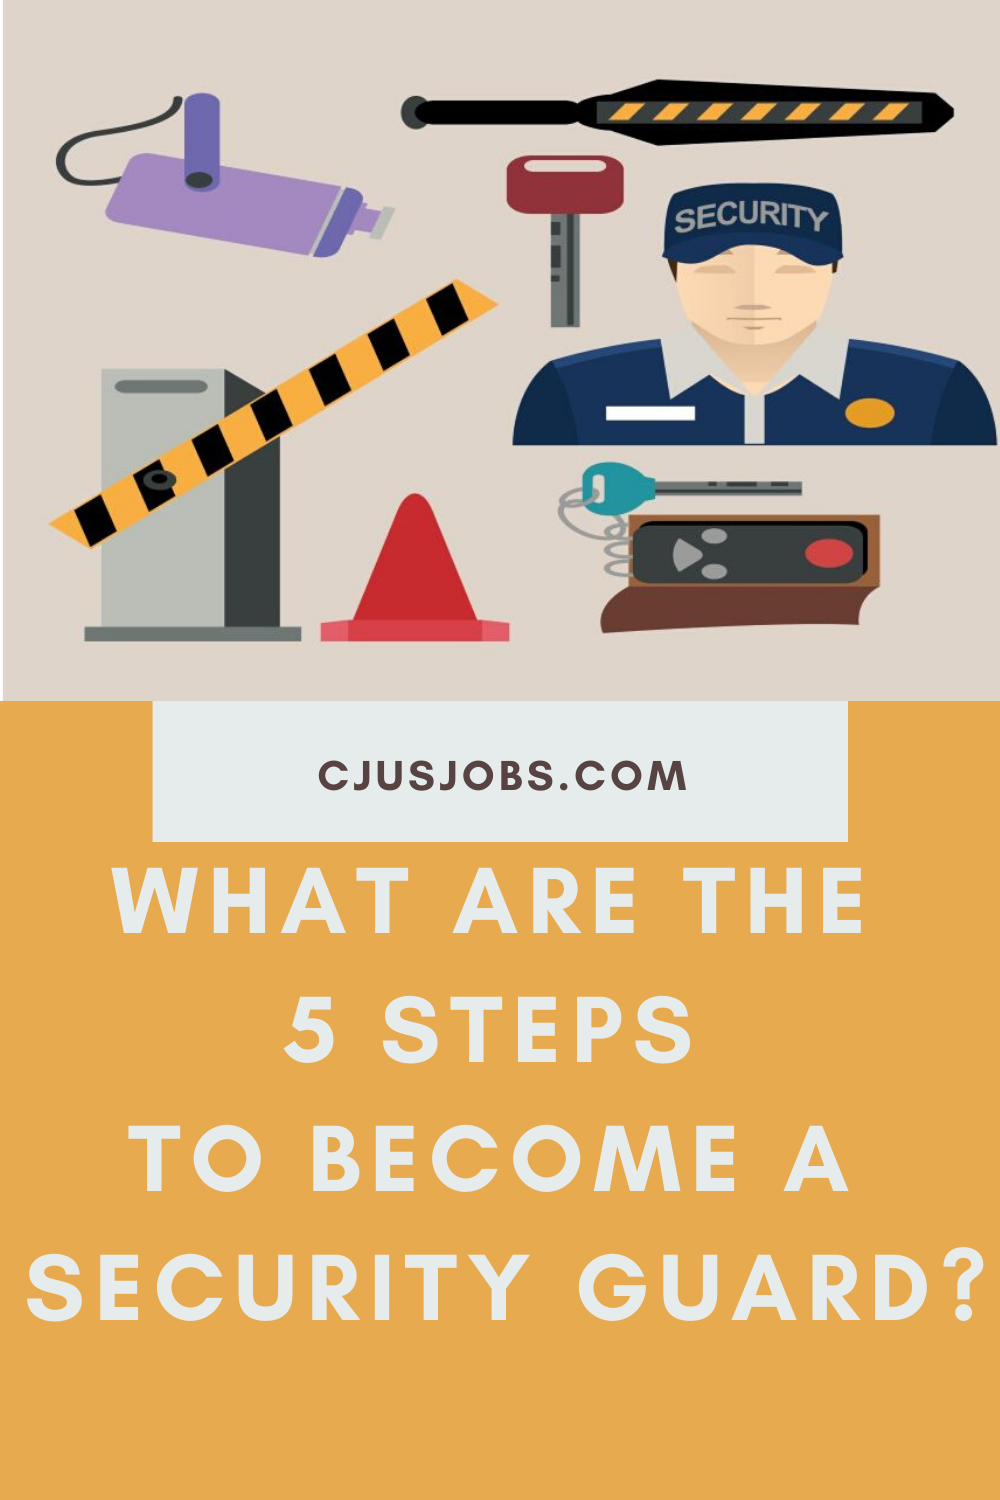 How To Become A Security Guard Step By Step Career Guide Security Guard Good Communication Skills How To Become